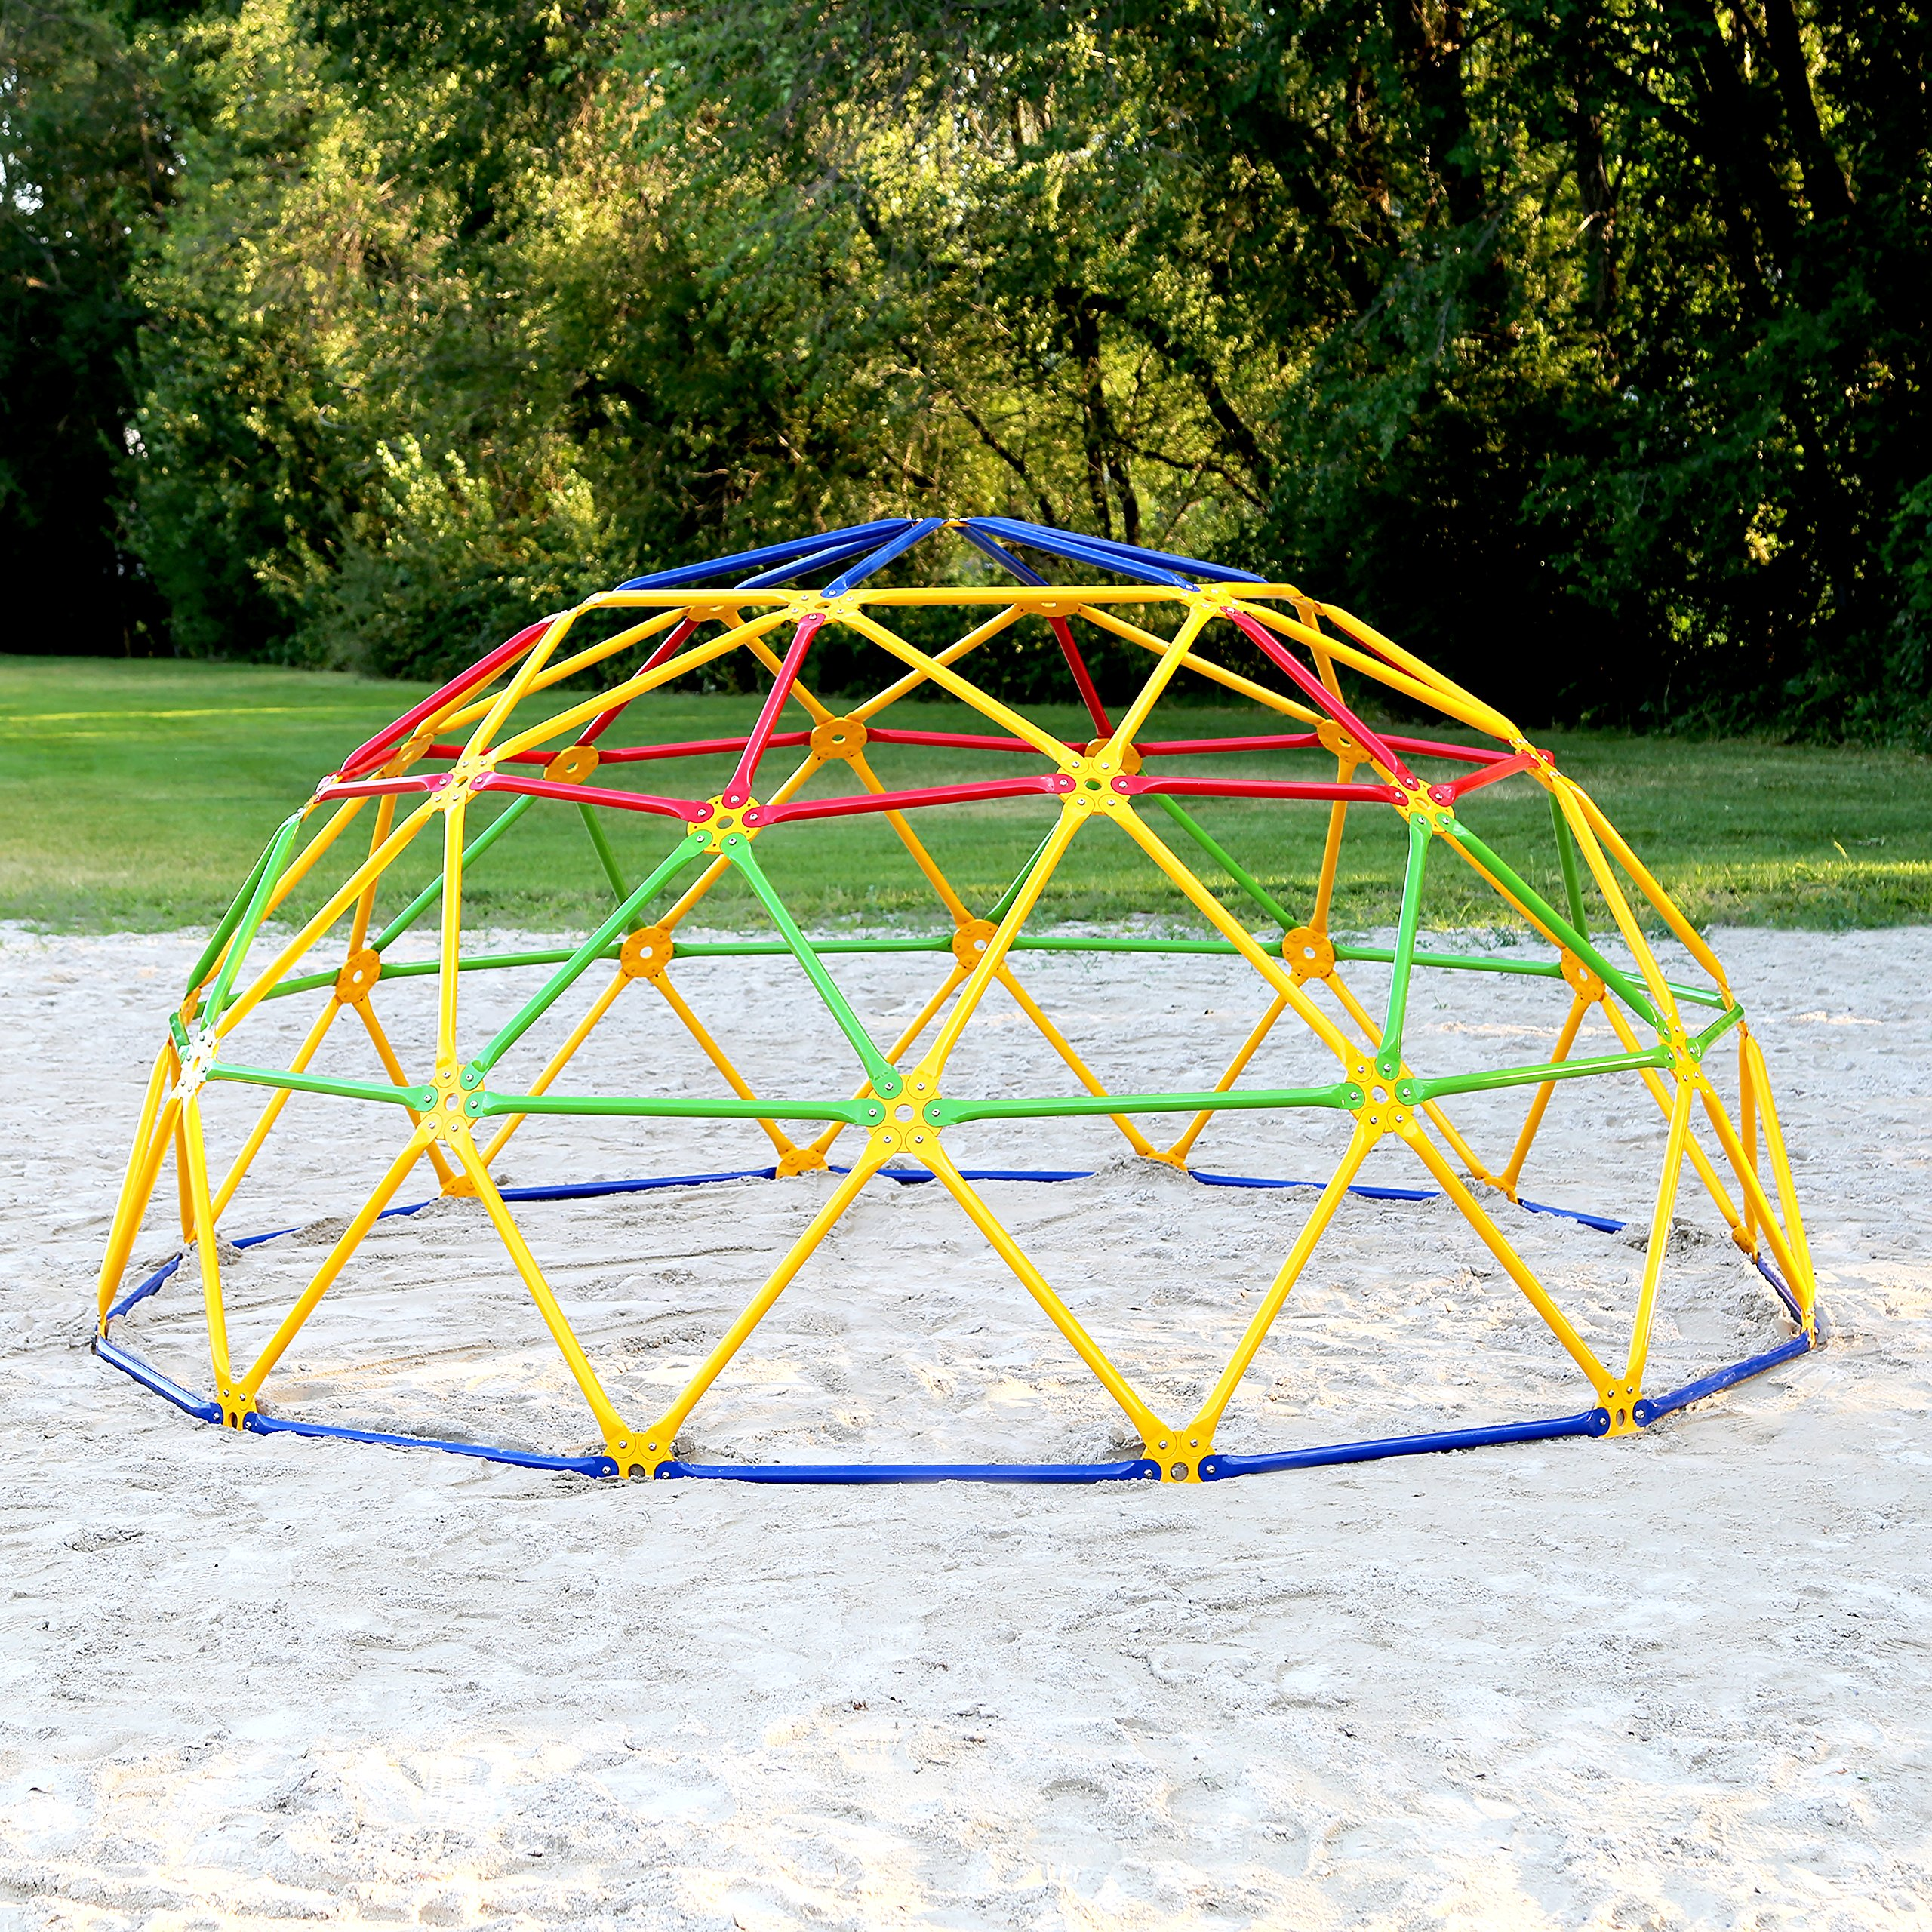 Skywalker Sports Geo Dome Climber with Swing Set by Skywalker Sports (Image #8)